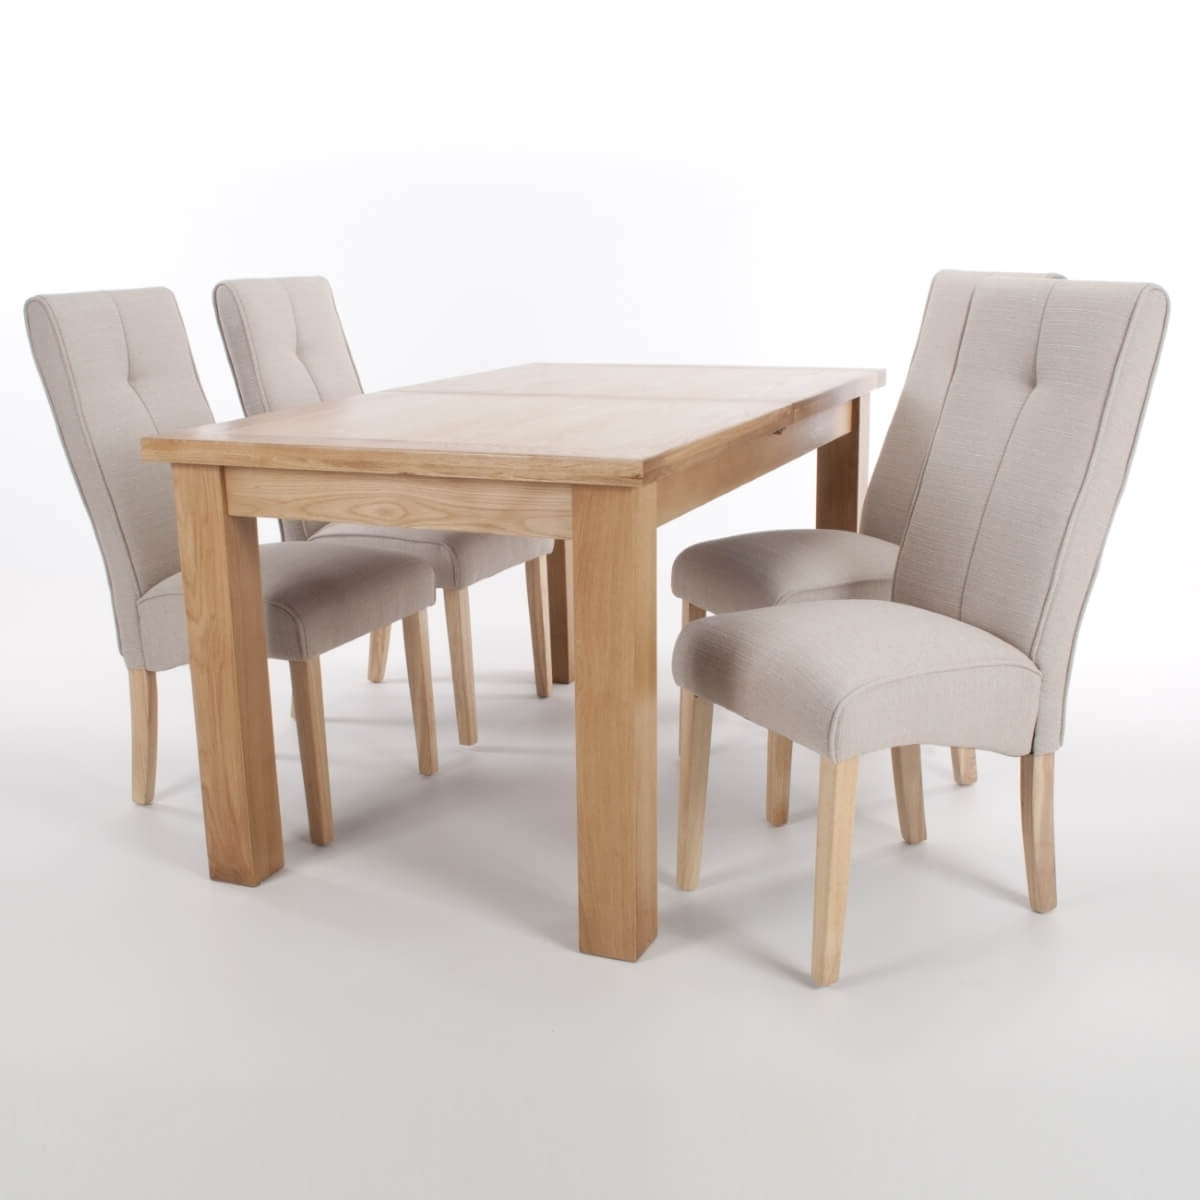 Oak Extending Dining Tables And 4 Chairs With Regard To 2018 Dining Set – Solid Oak Extending Dining Table And 4 Linea Cream (View 13 of 25)